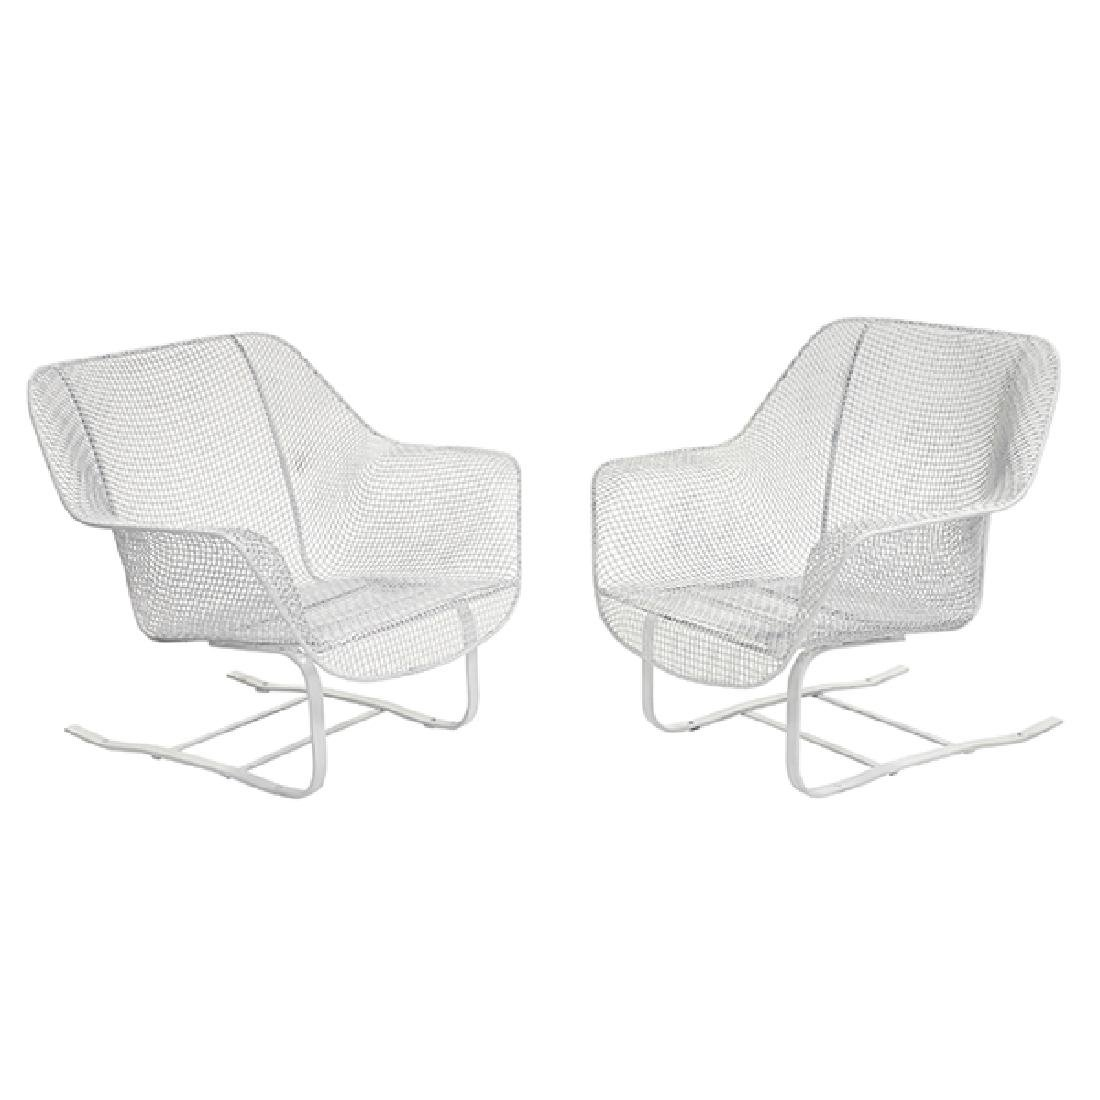 Russell Woodard Springer chairs, pair